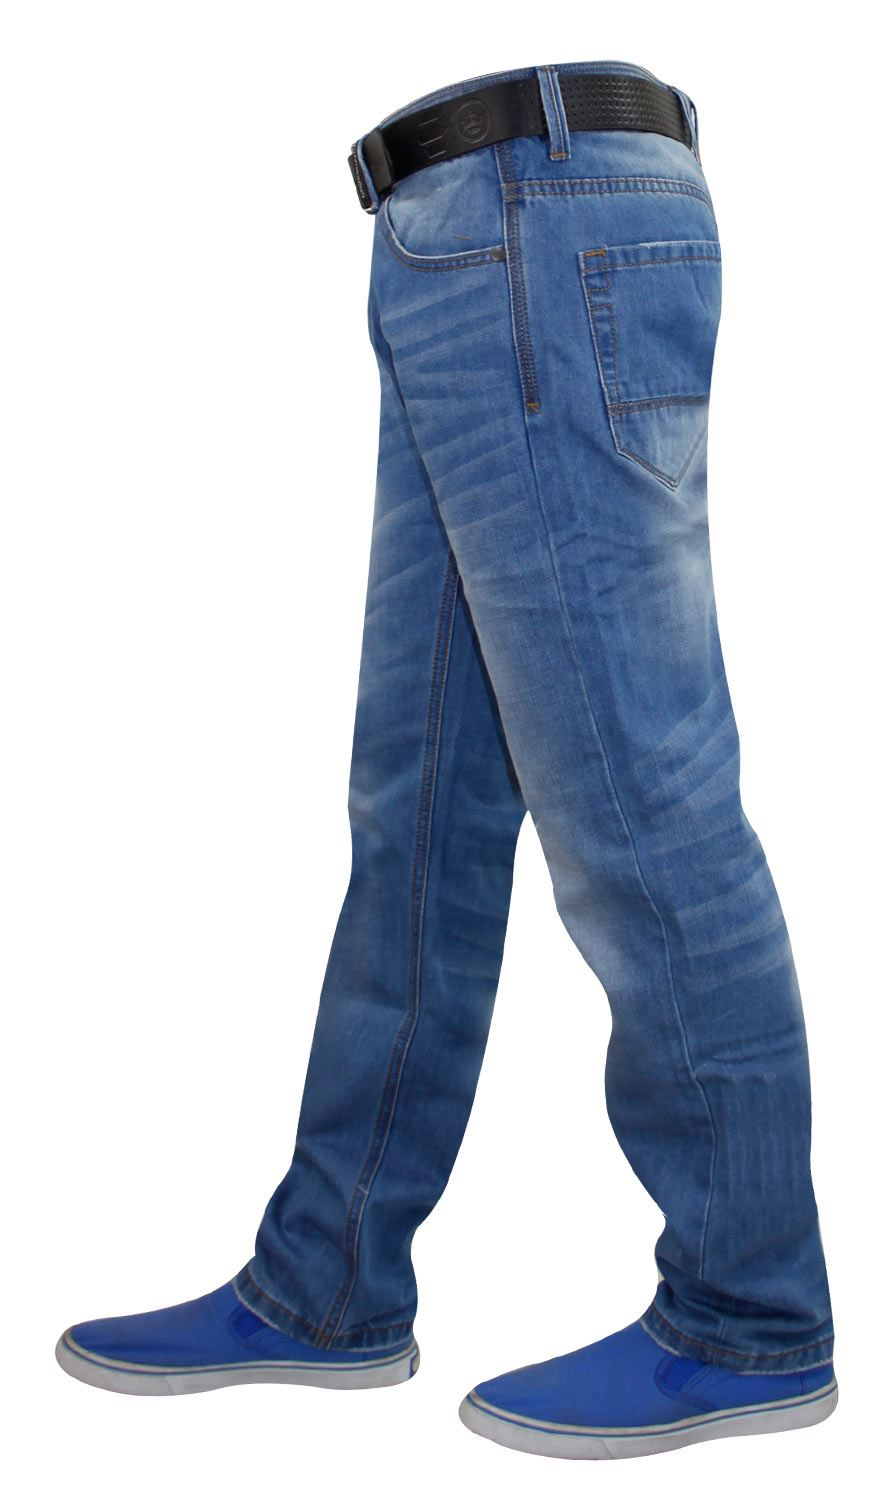 Mens-Straight-Leg-Jeans-Regular-Fit-Denim-Pants-Trousers-With-Free-Leather-Belt thumbnail 11